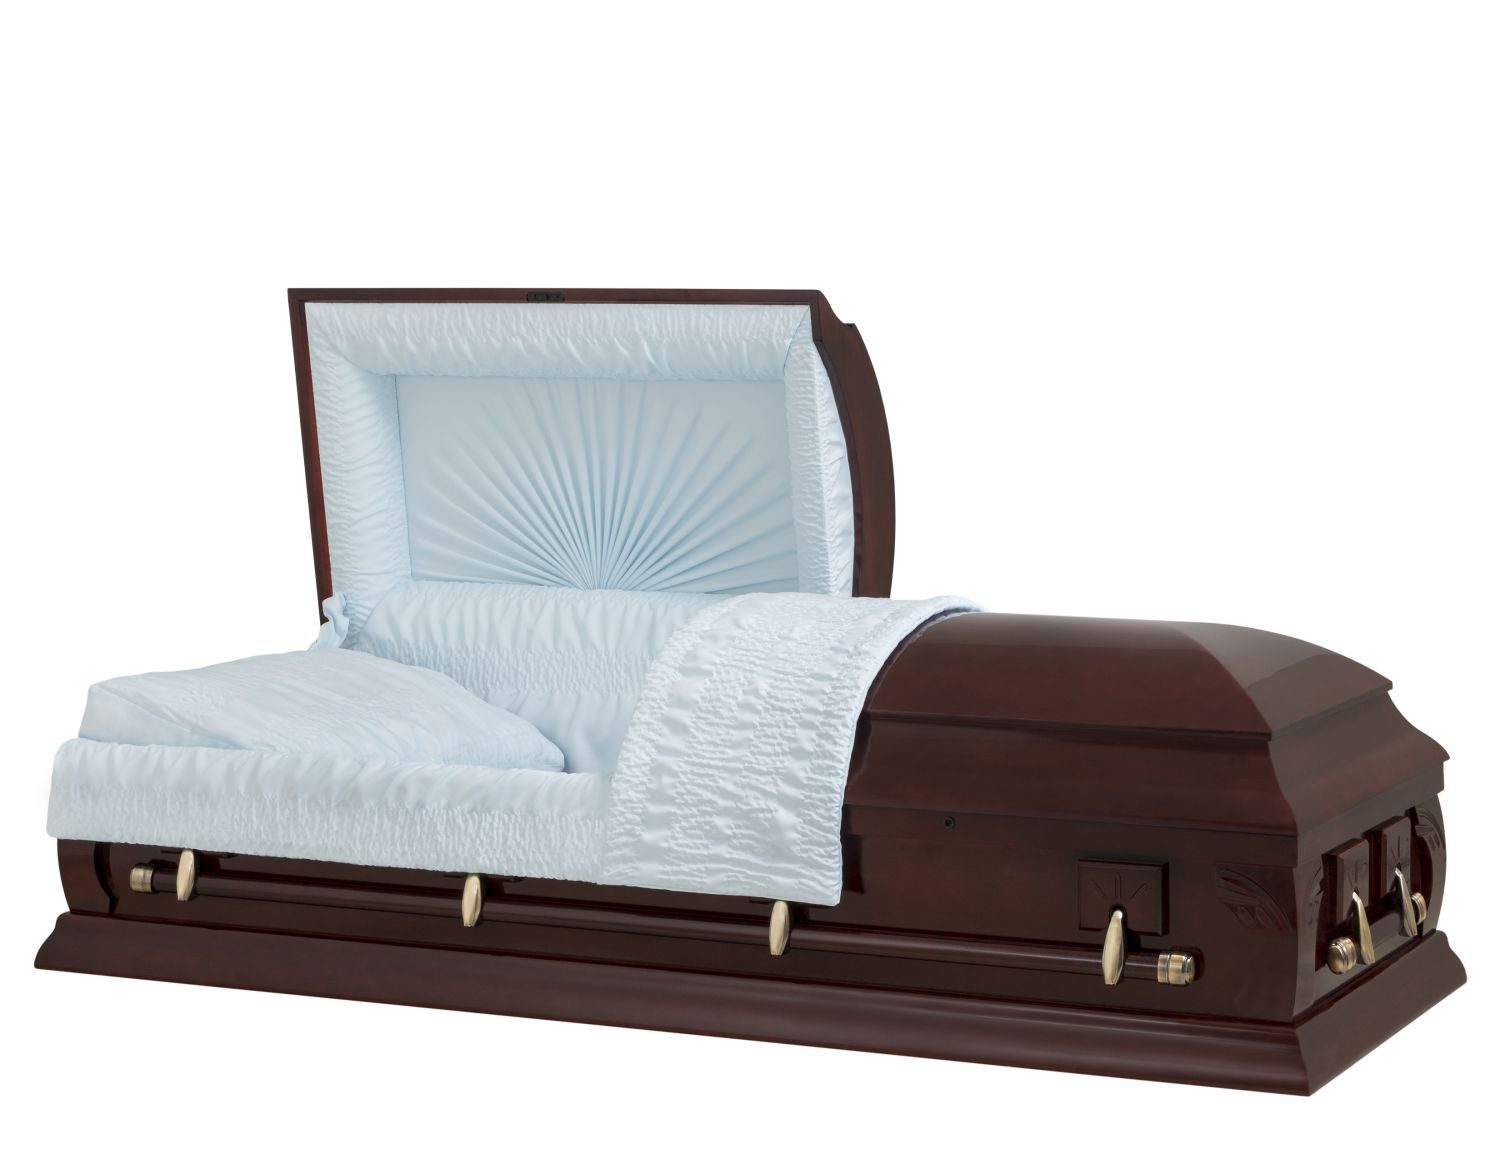 Concept Caskets 23223-00006-N POPLAR CASKET POLISHED CREPE VICTORY MAHOGANY ADJUSTABLE BED YES W1542W-1    4 X 2 ANTIQUE GOLD